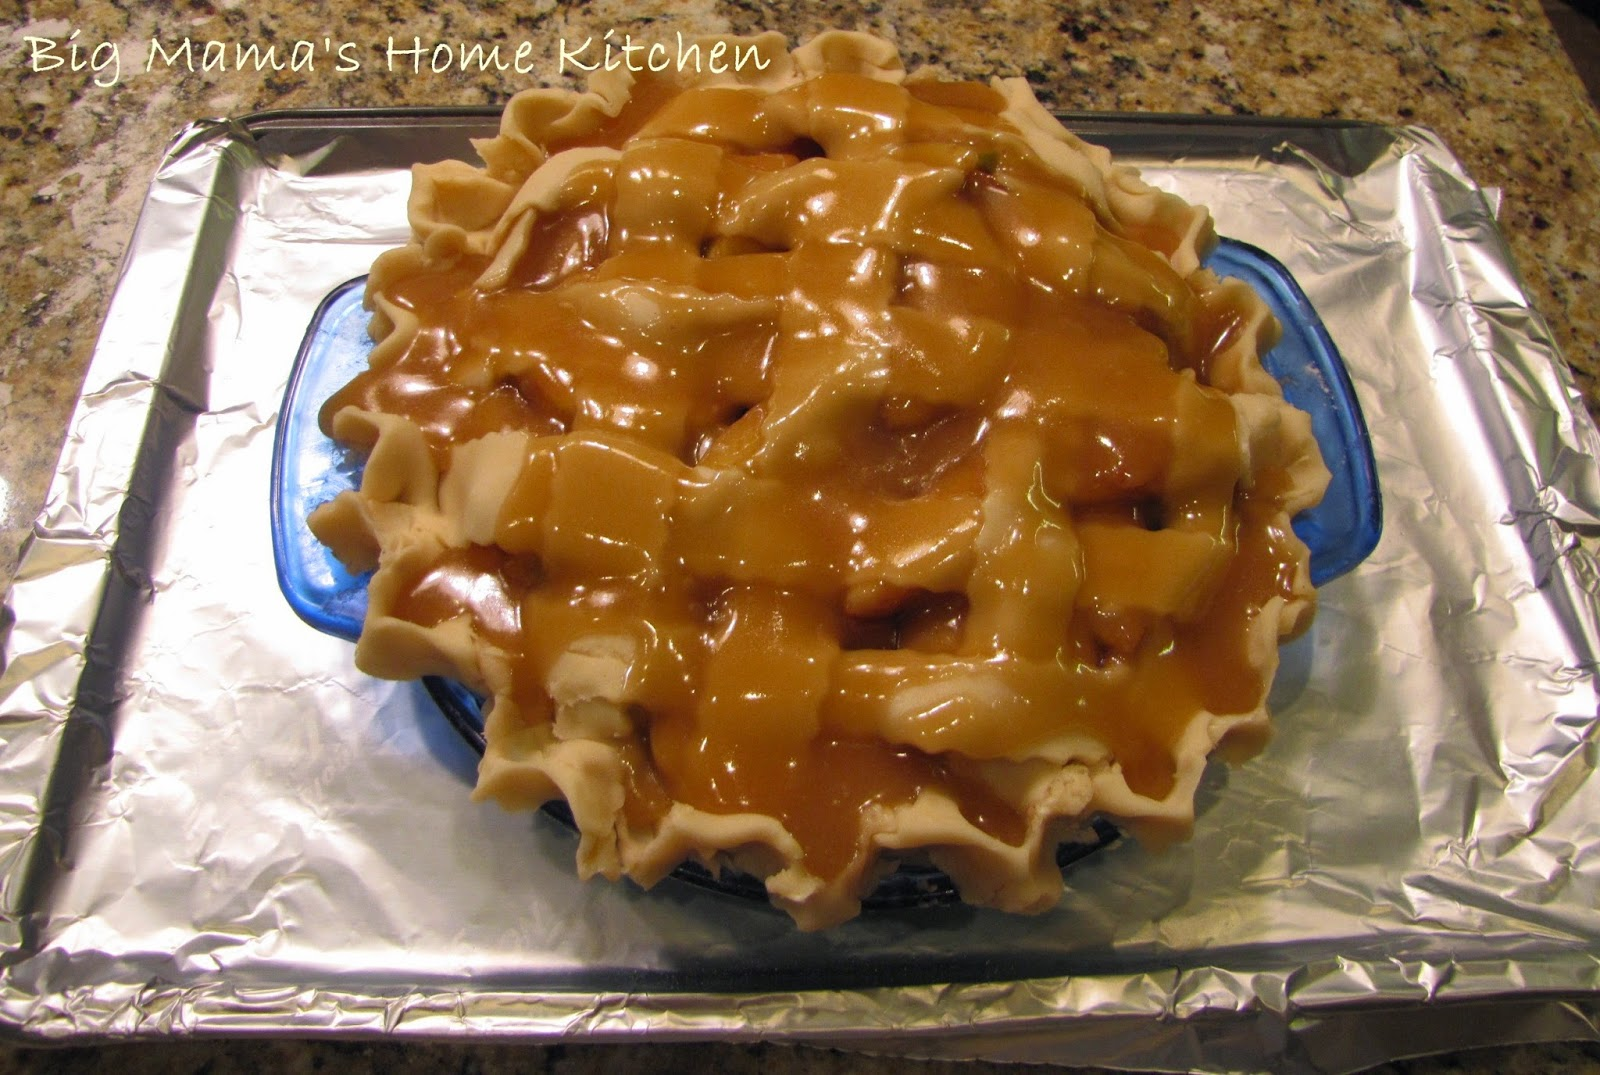 Big Mama's Home Kitchen: Caramel Apple Pie